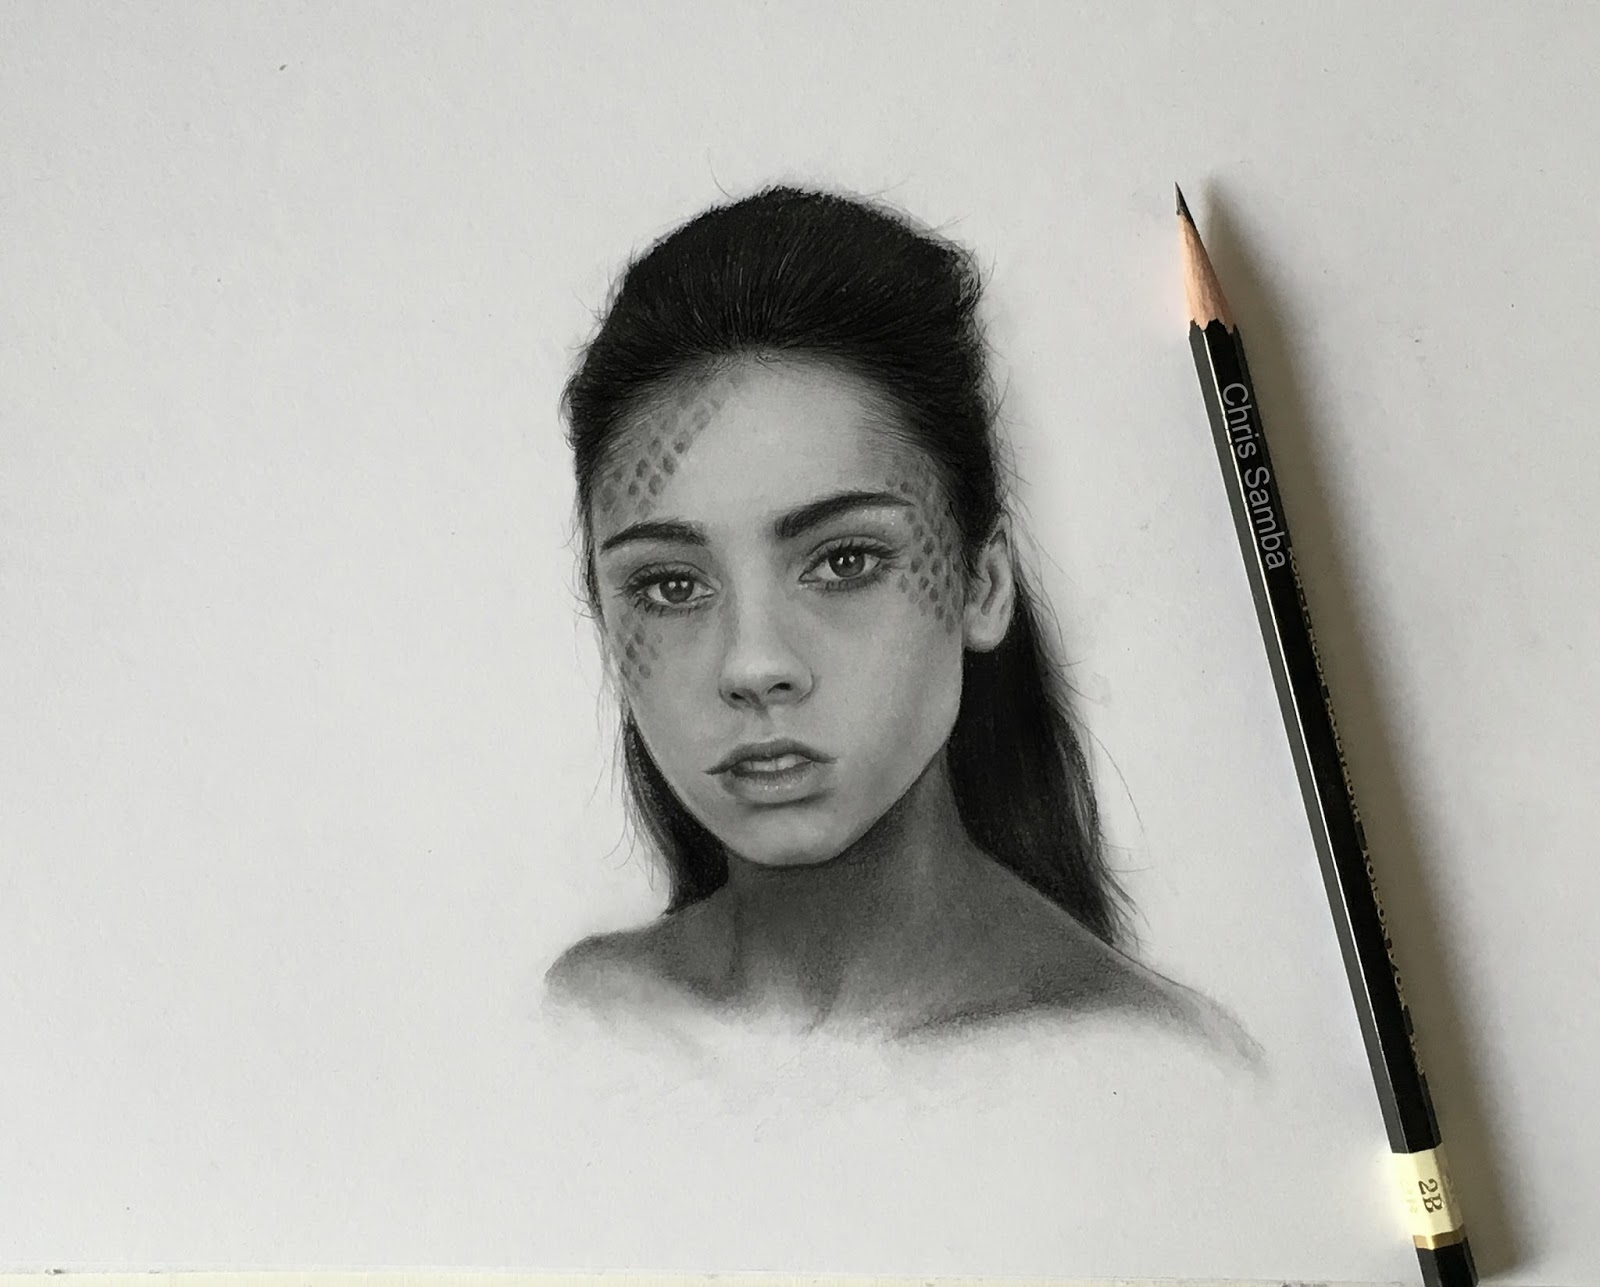 Pencil sketch portrait from photo